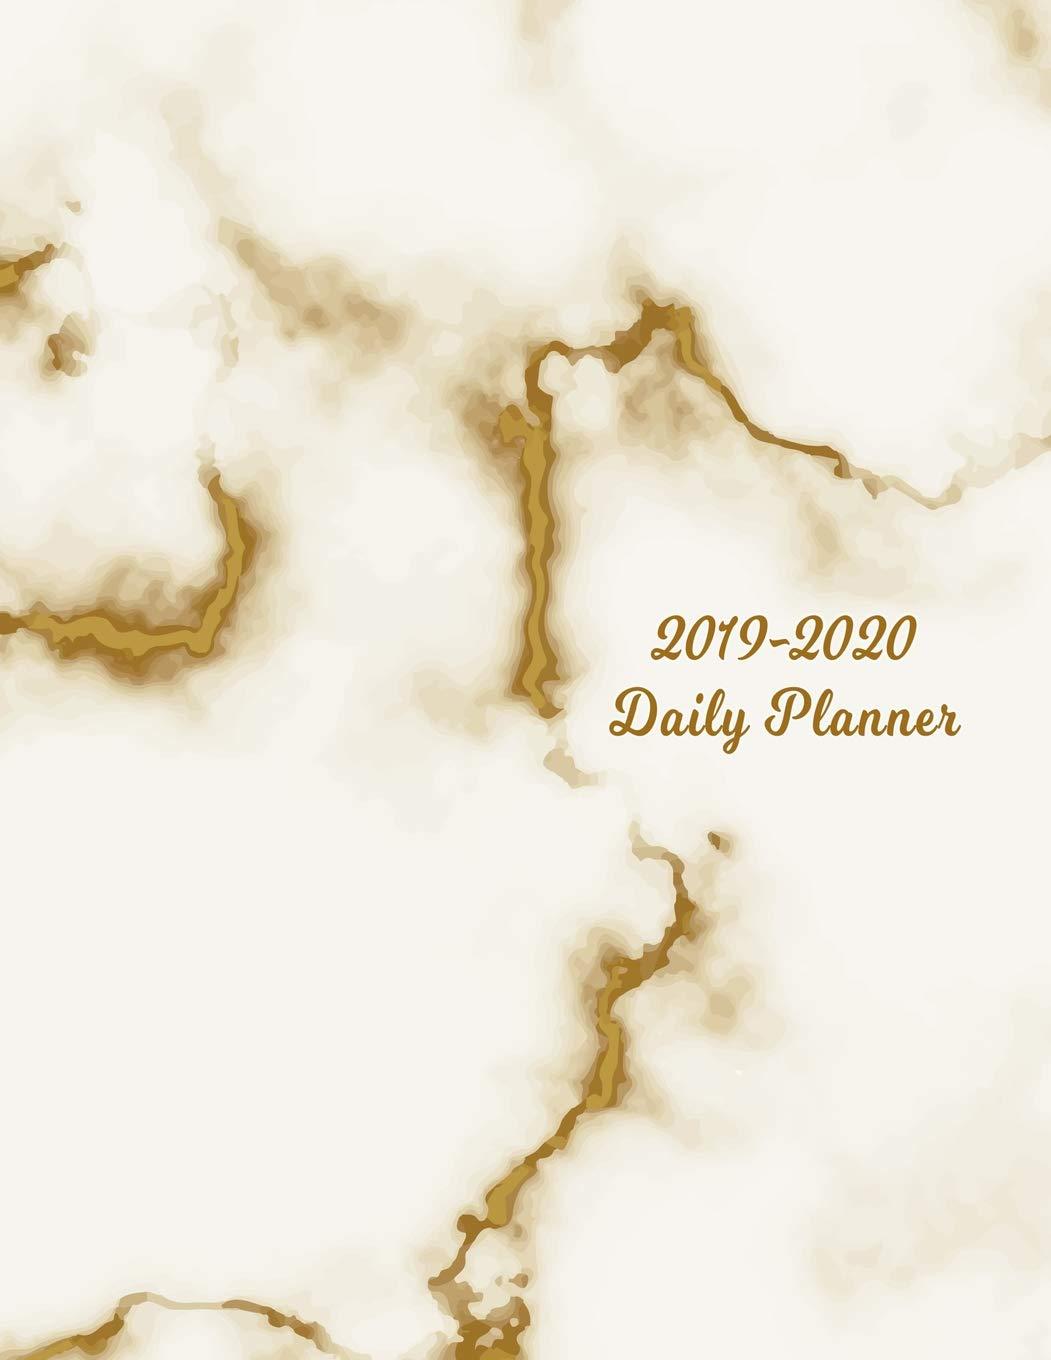 2019 - 2020 Daily Planner: White & Brown Marble Cover | Full ...